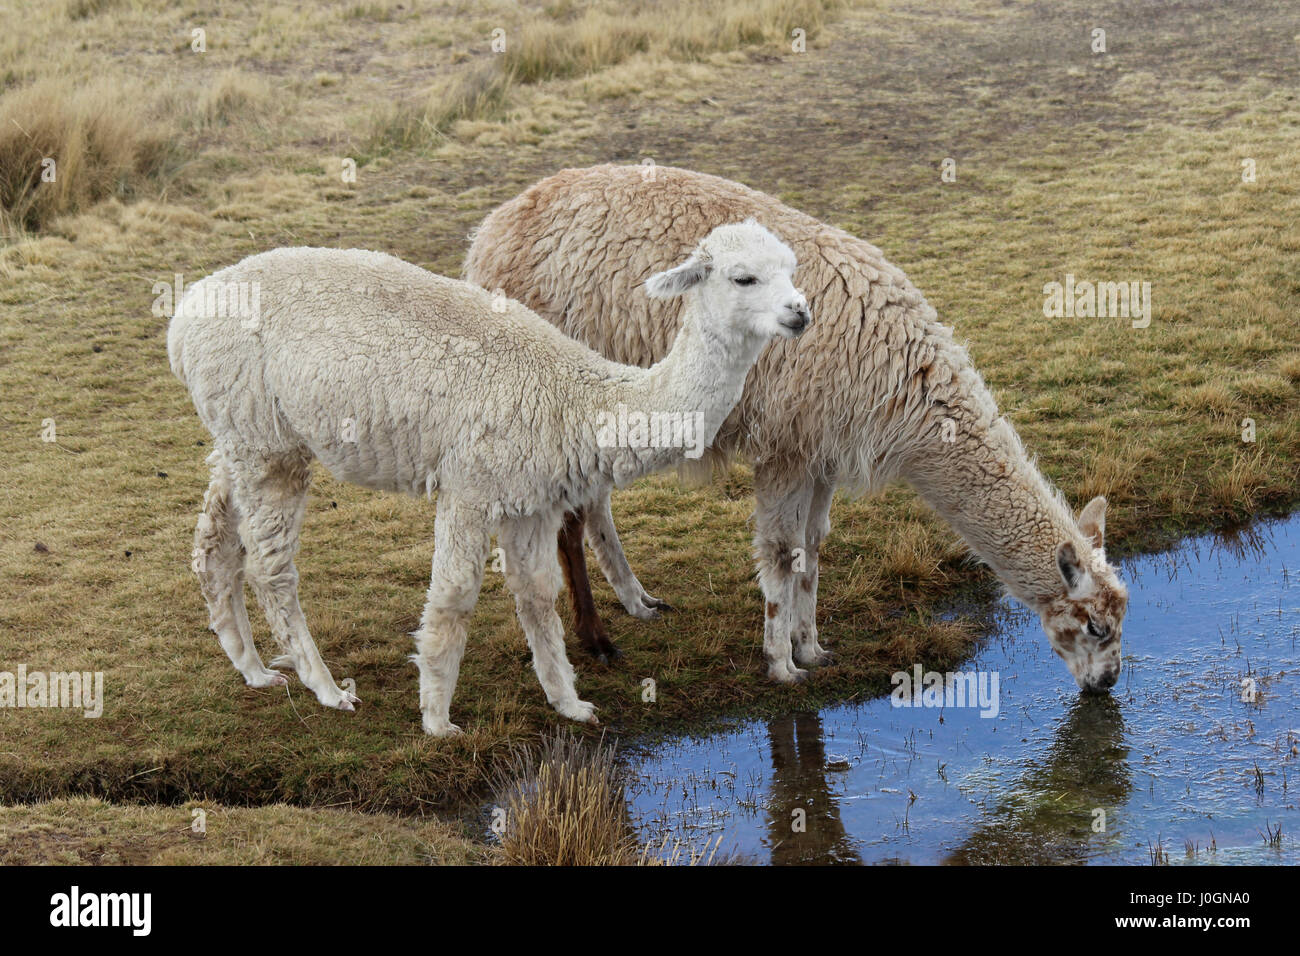 Llamas Drinking From Andean Lake - Stock Image